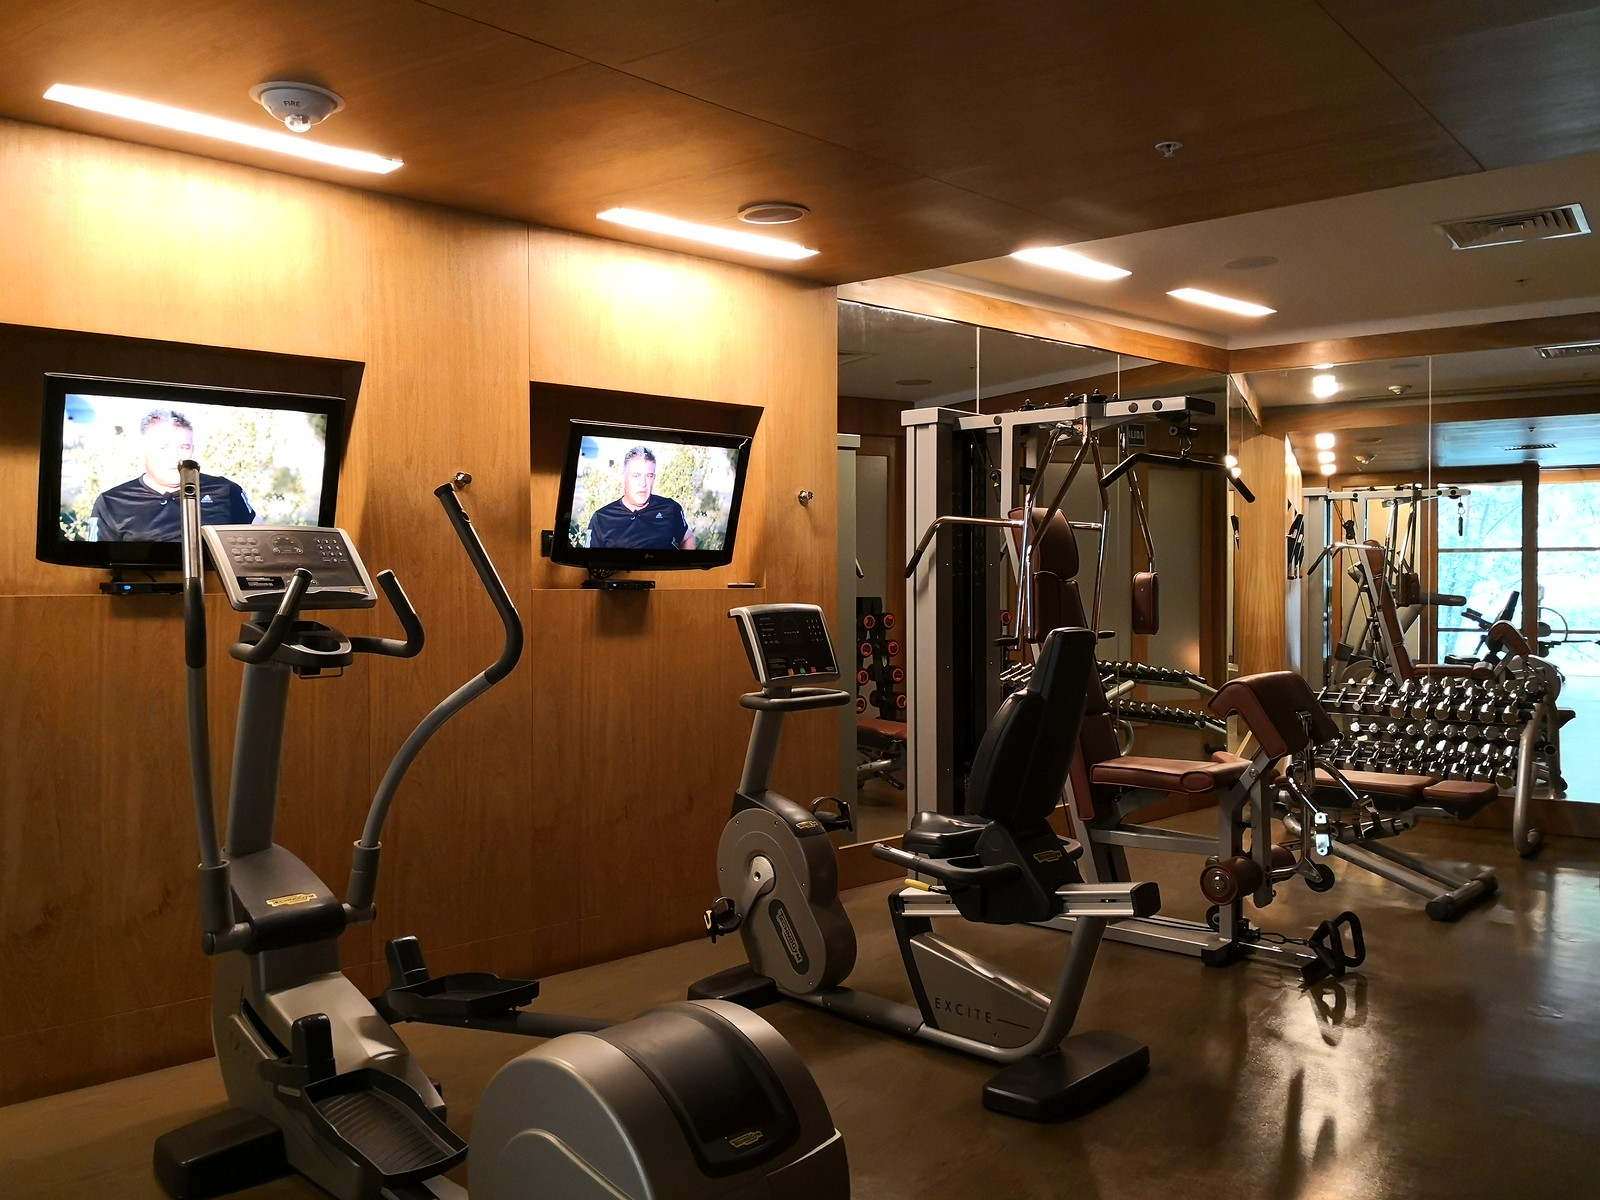 Equipments in the fitness centre